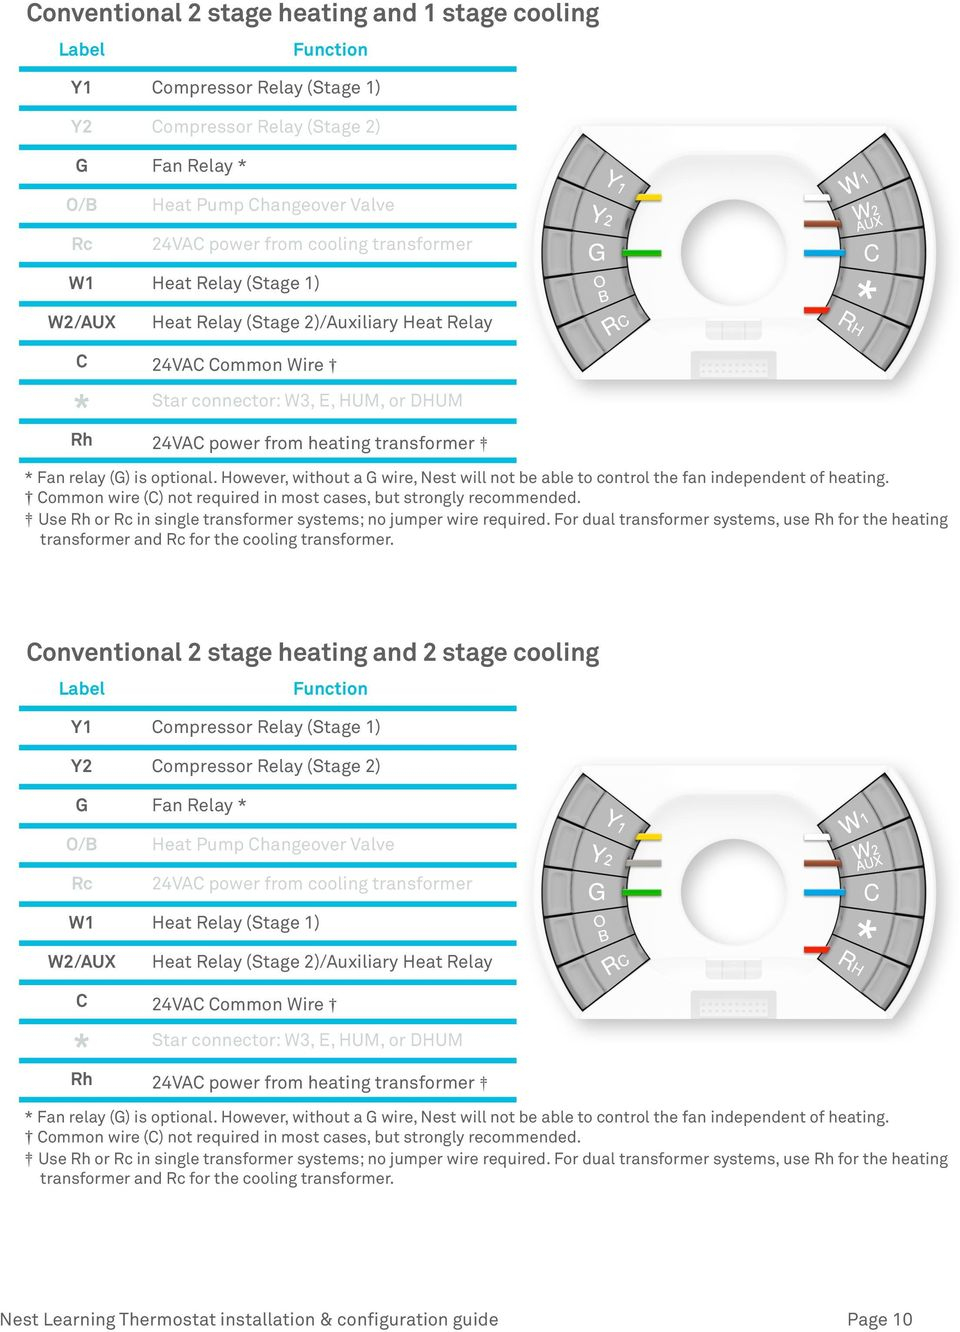 Nest Radiant Heat Wiring Diagram | Wiring Diagram - Nest Thermostat Wiring Diagram For Radiant Heat